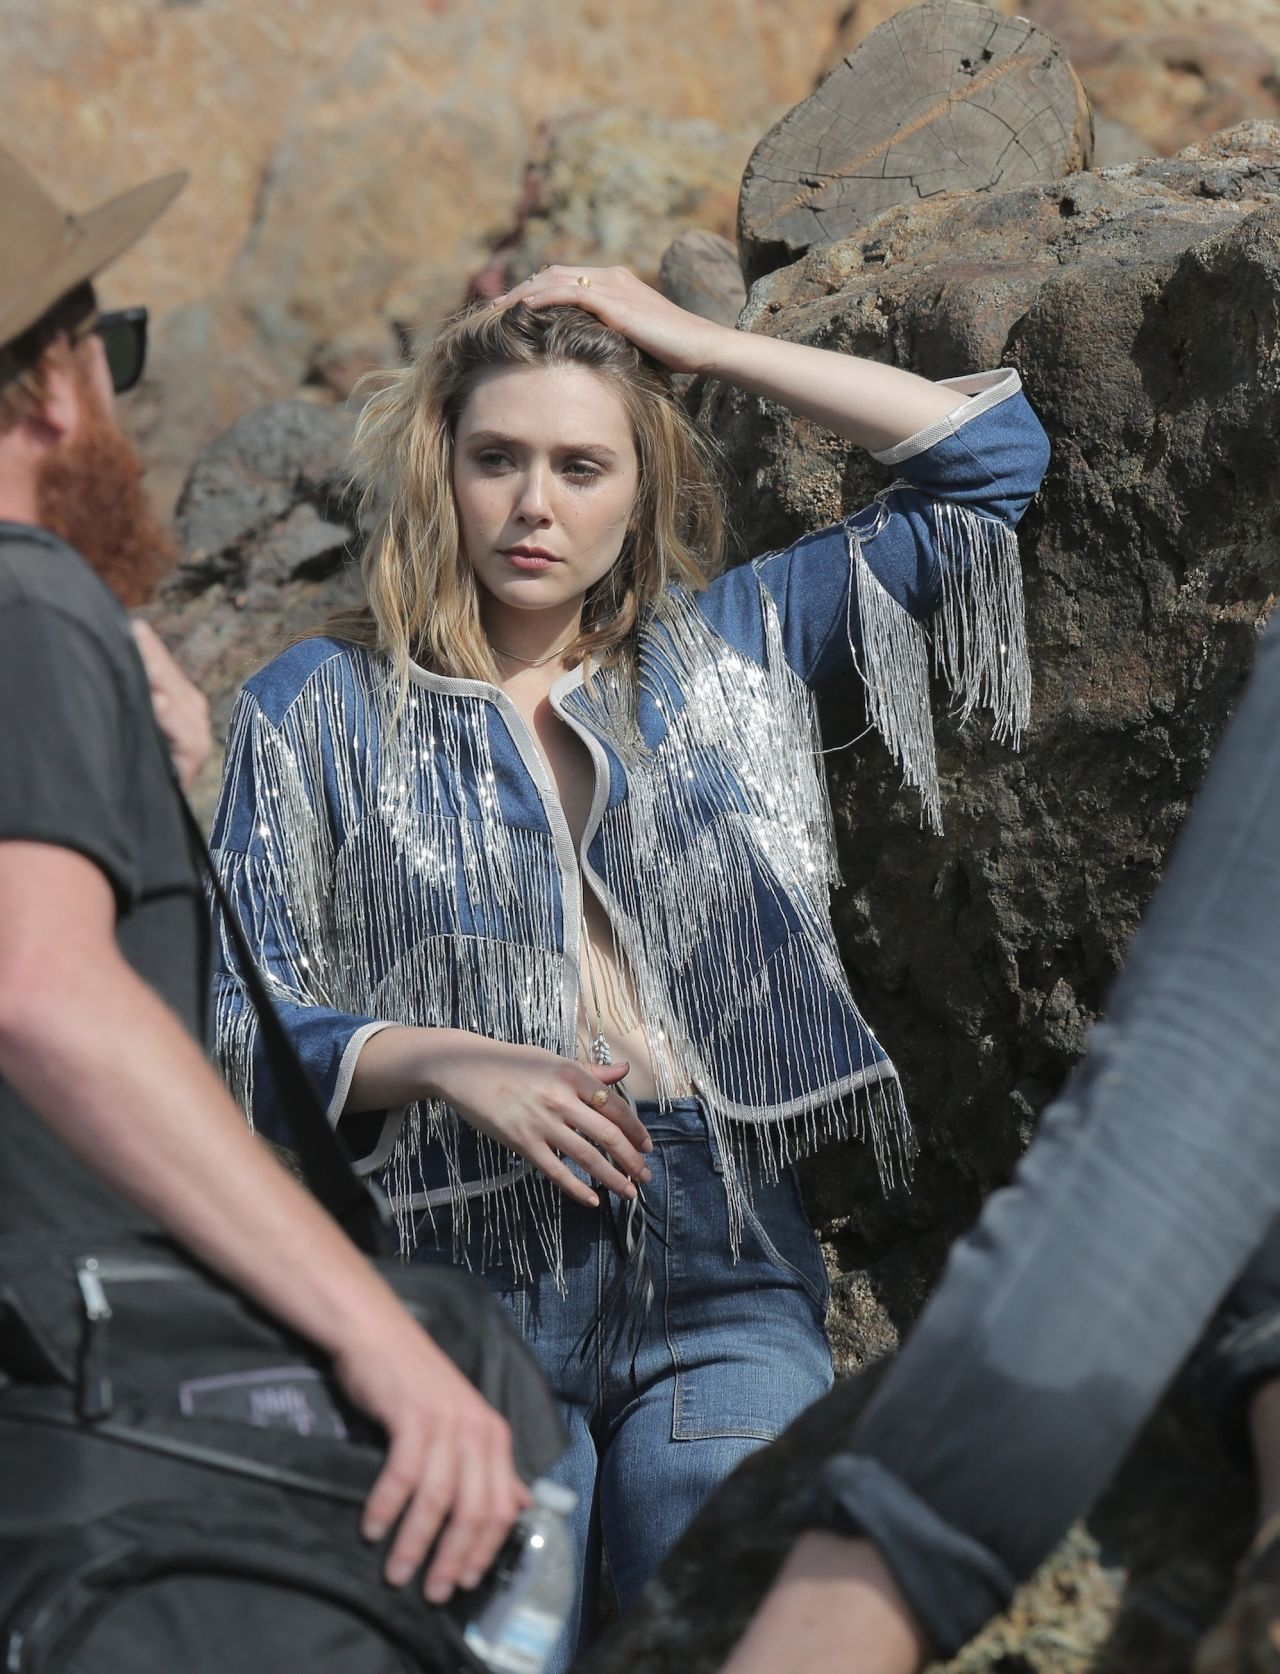 Elizabeth Olsen Photoshoot Beach In Malibu March 2015